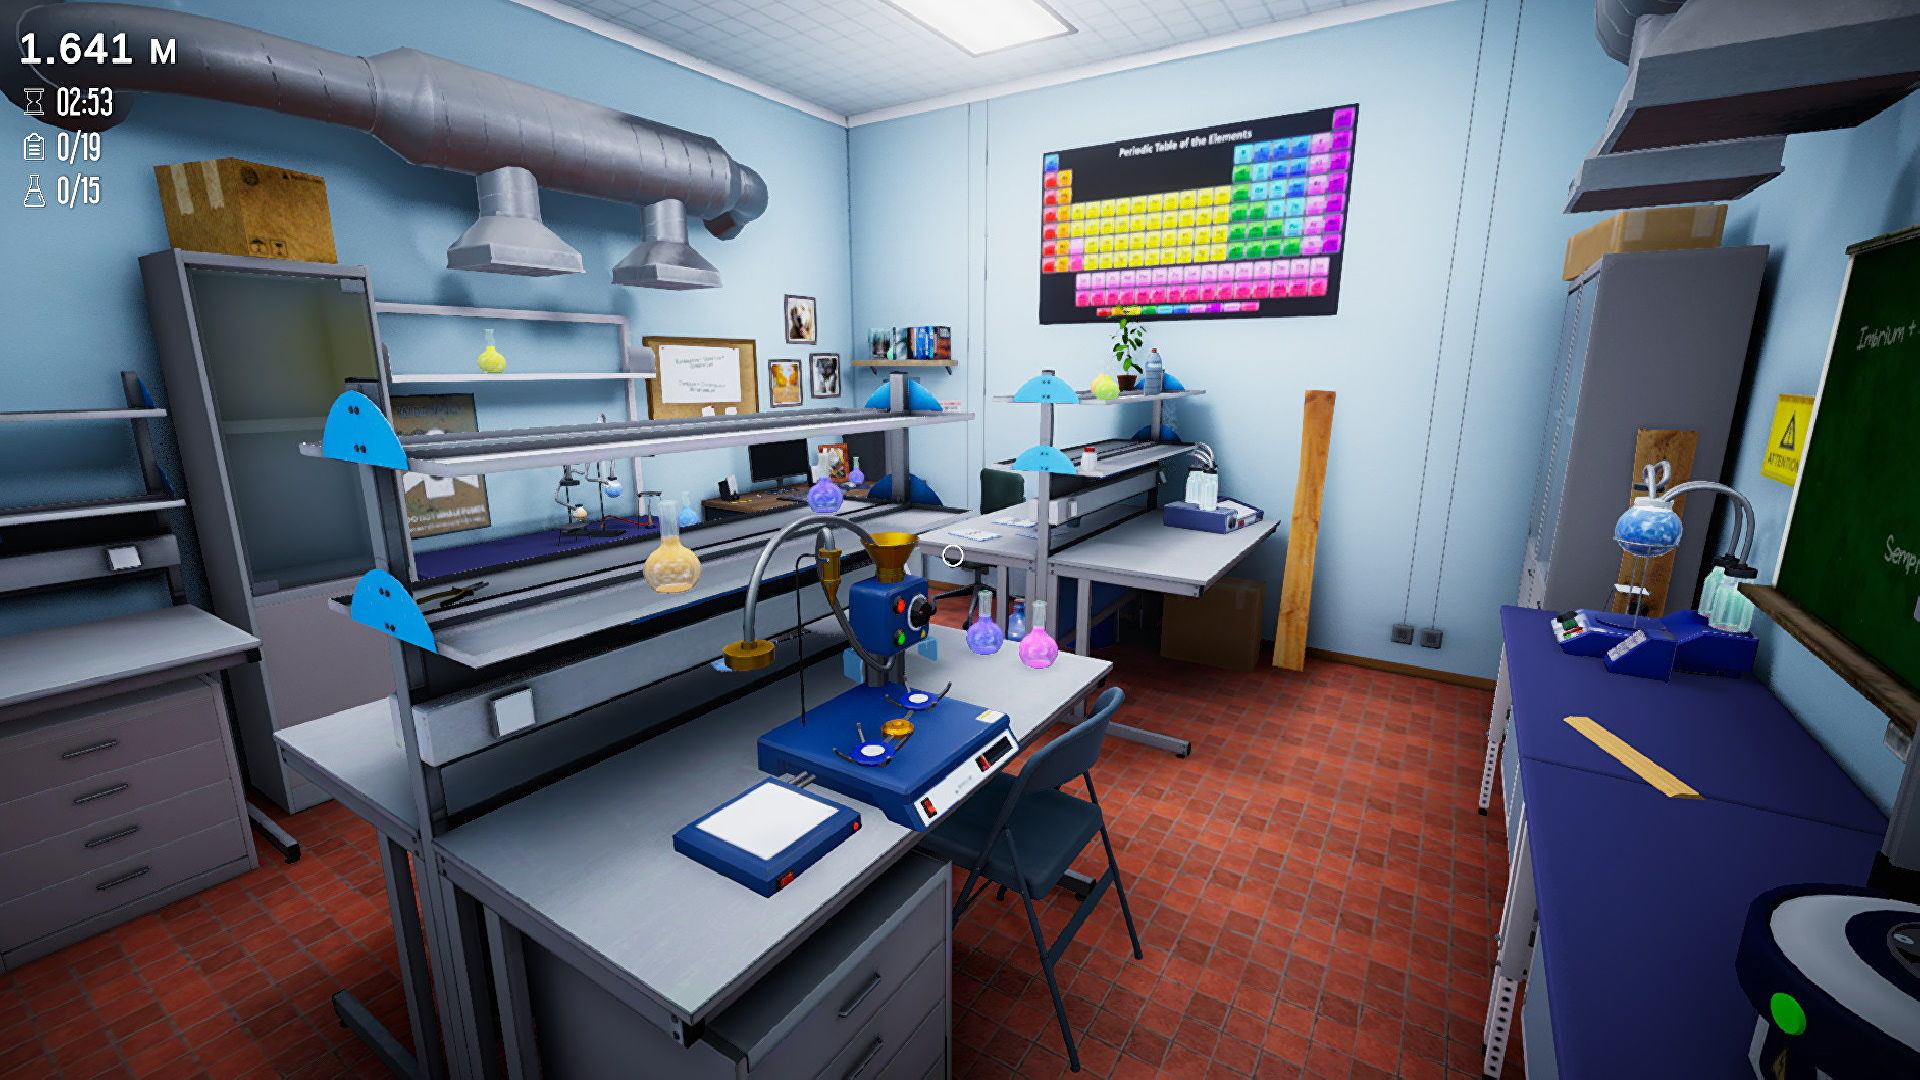 This puzzle game stars a shrinking scientist desperately seeking an antidote